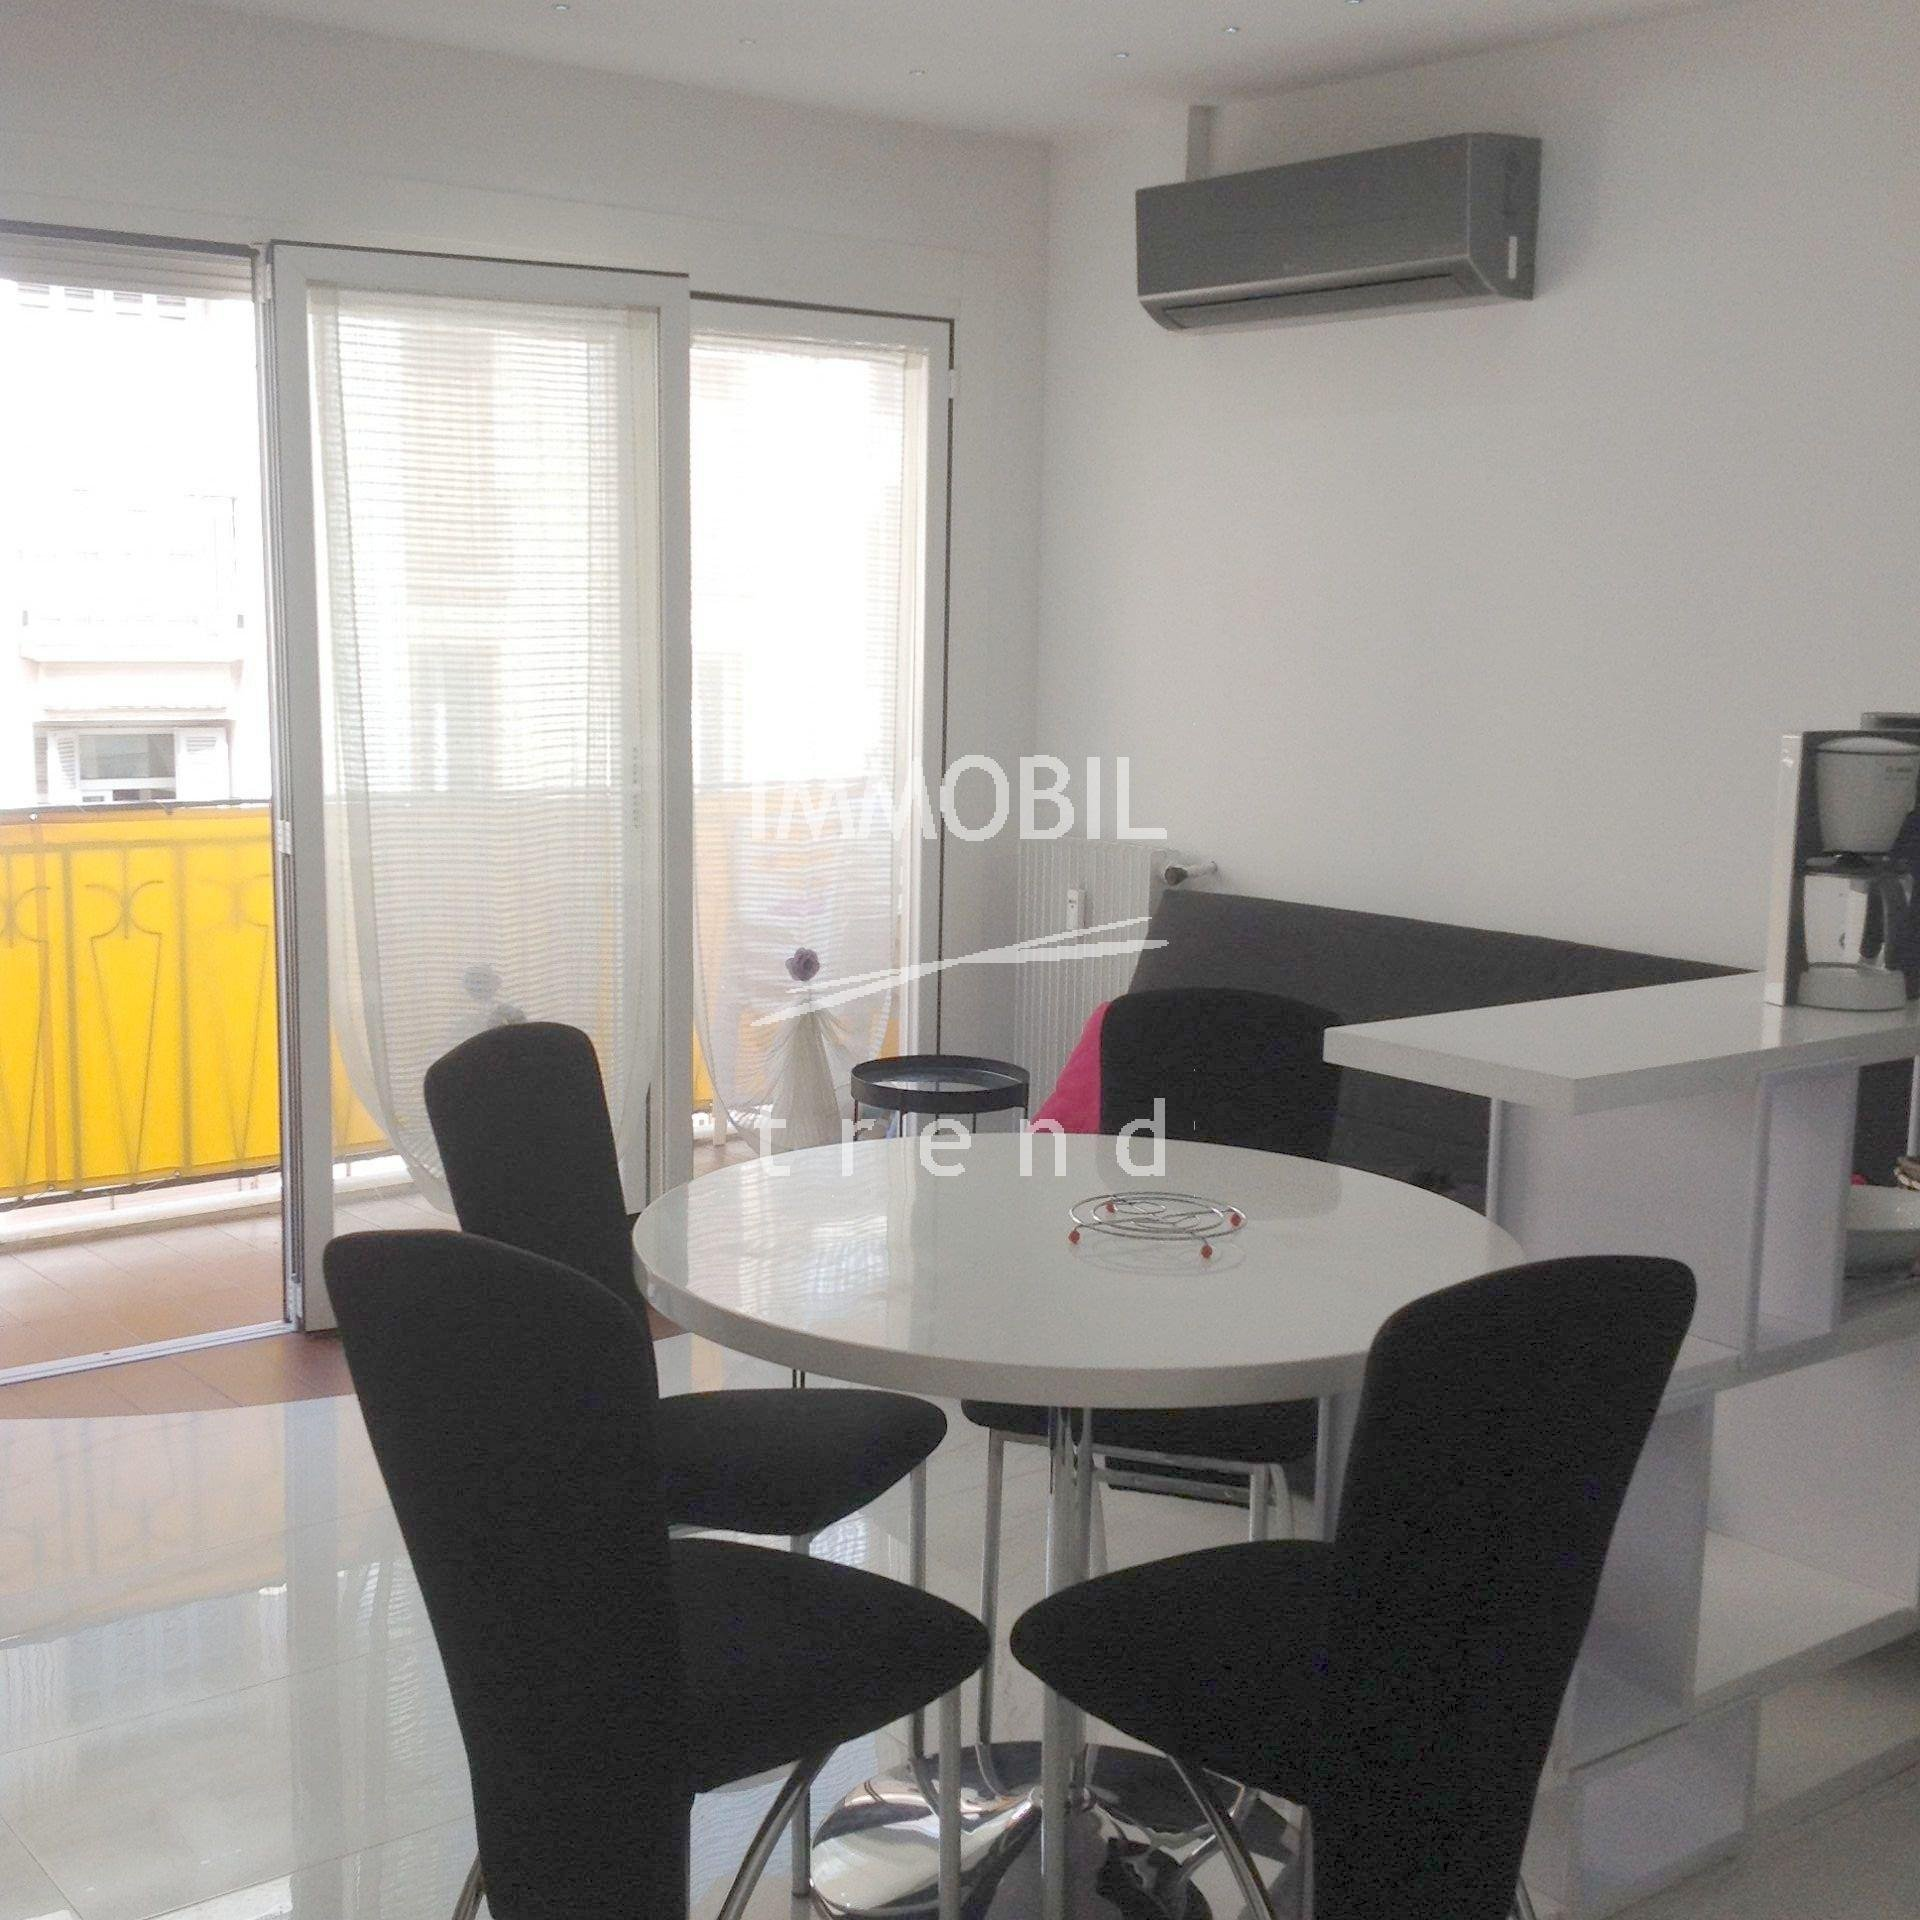 LOCATION ETUDIANTS |APPARTEMENT 2 PIECES - MENTON CENTRE|